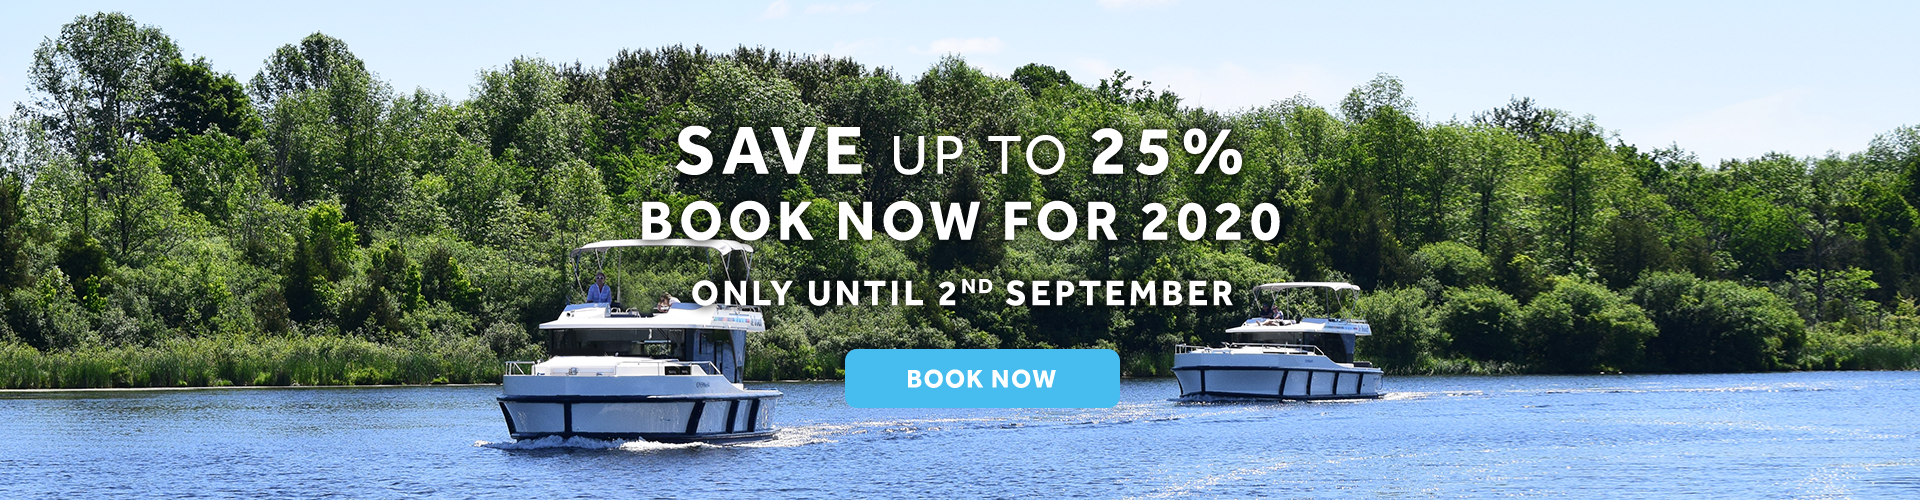 Le Boat - book now for 2020